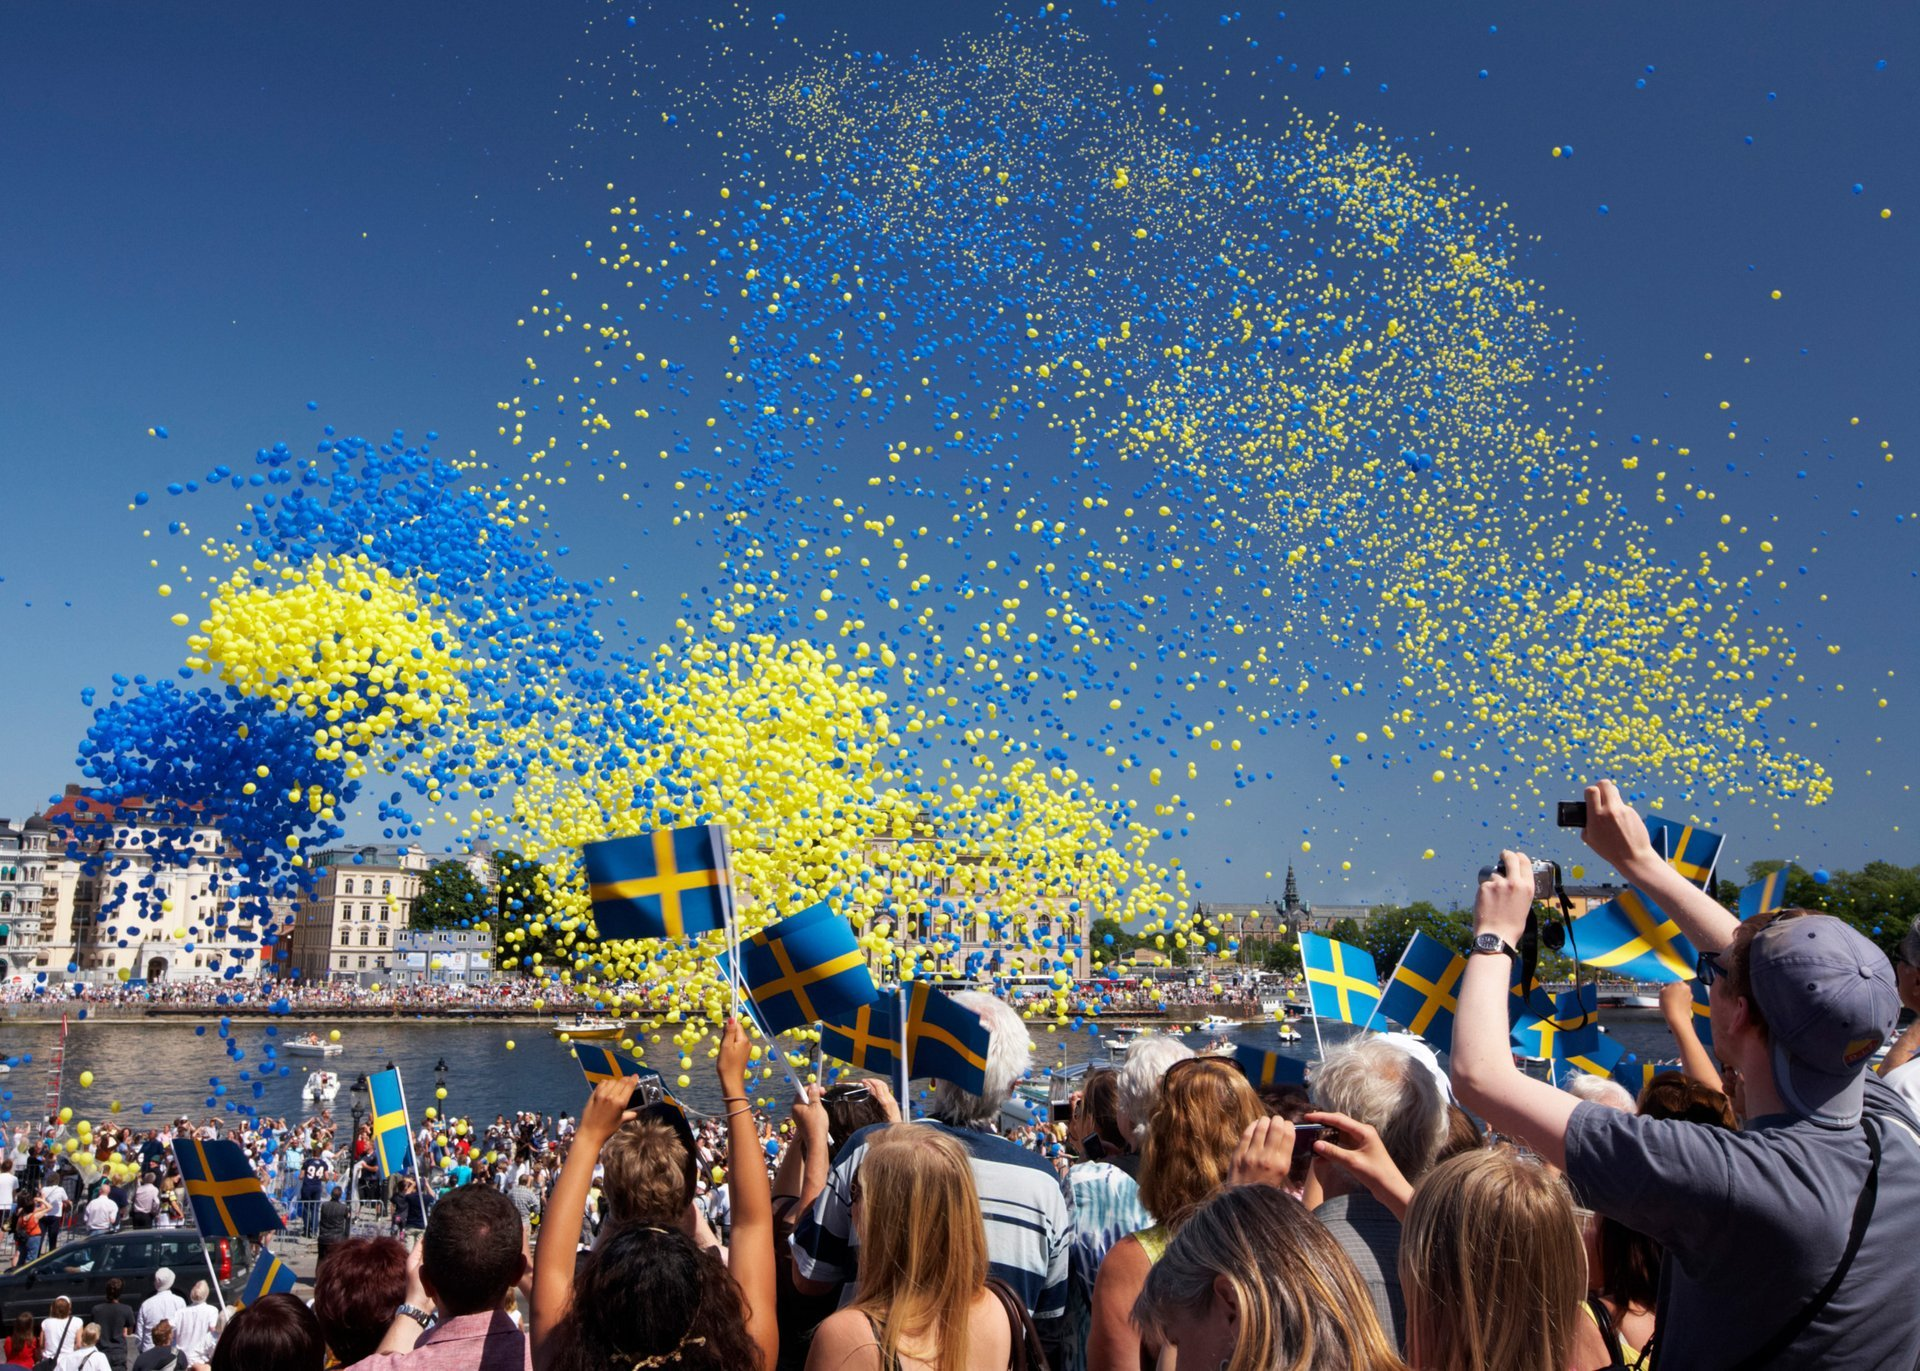 National Day in Sweden 2020 - Best Time